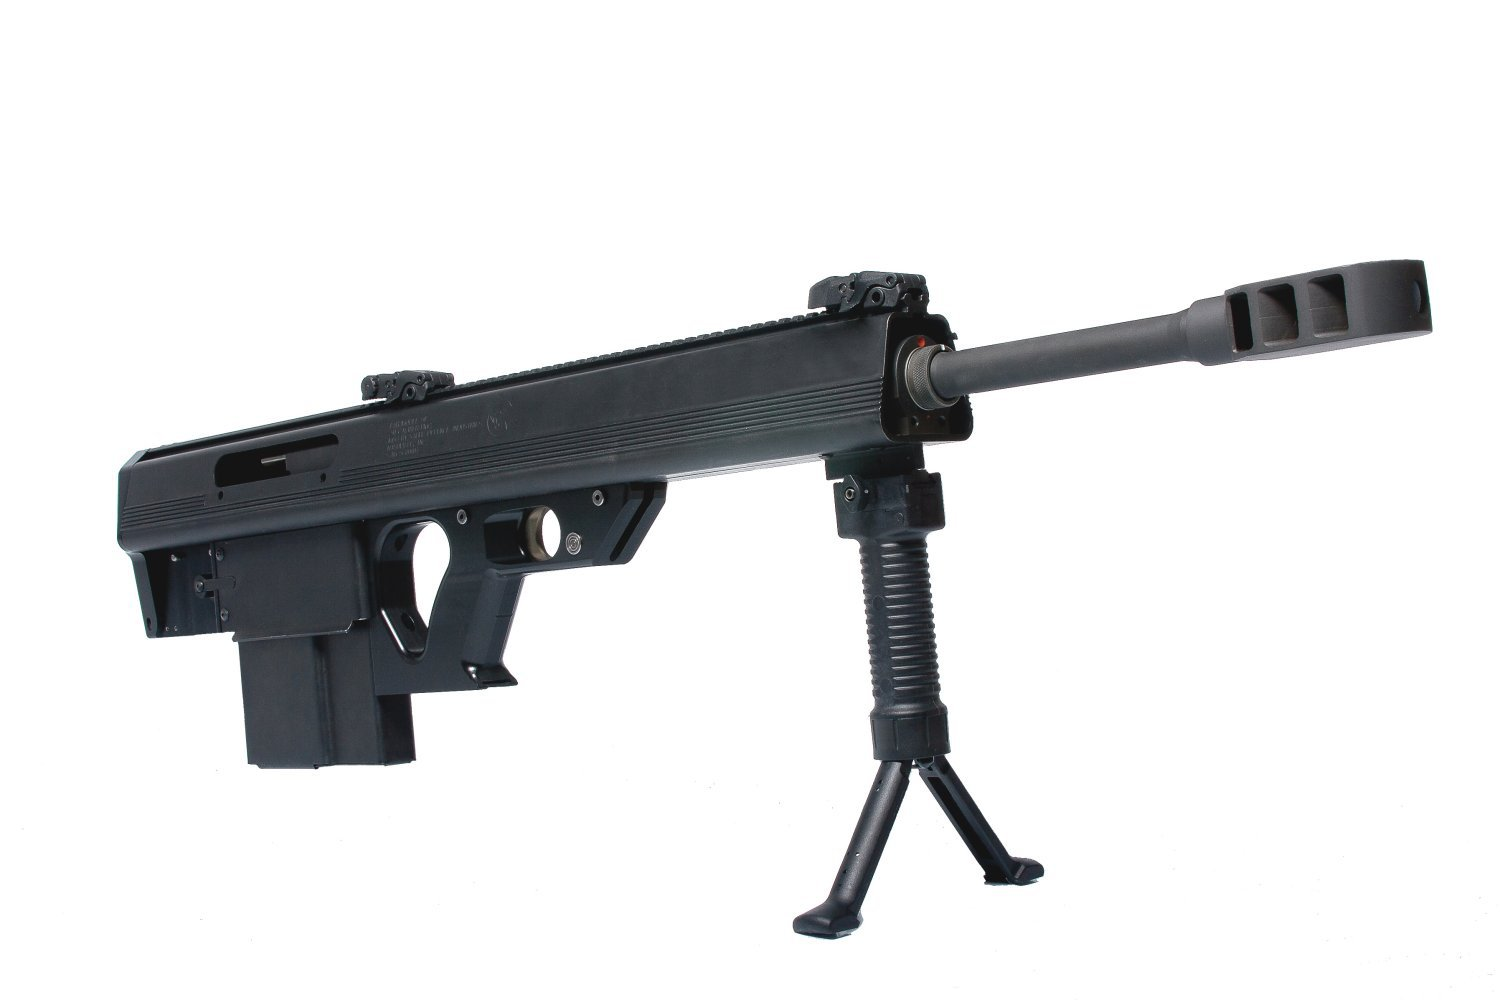 Anti Materiel Rifle leader 50 bmg revolutionary ultra-compact and lightweight